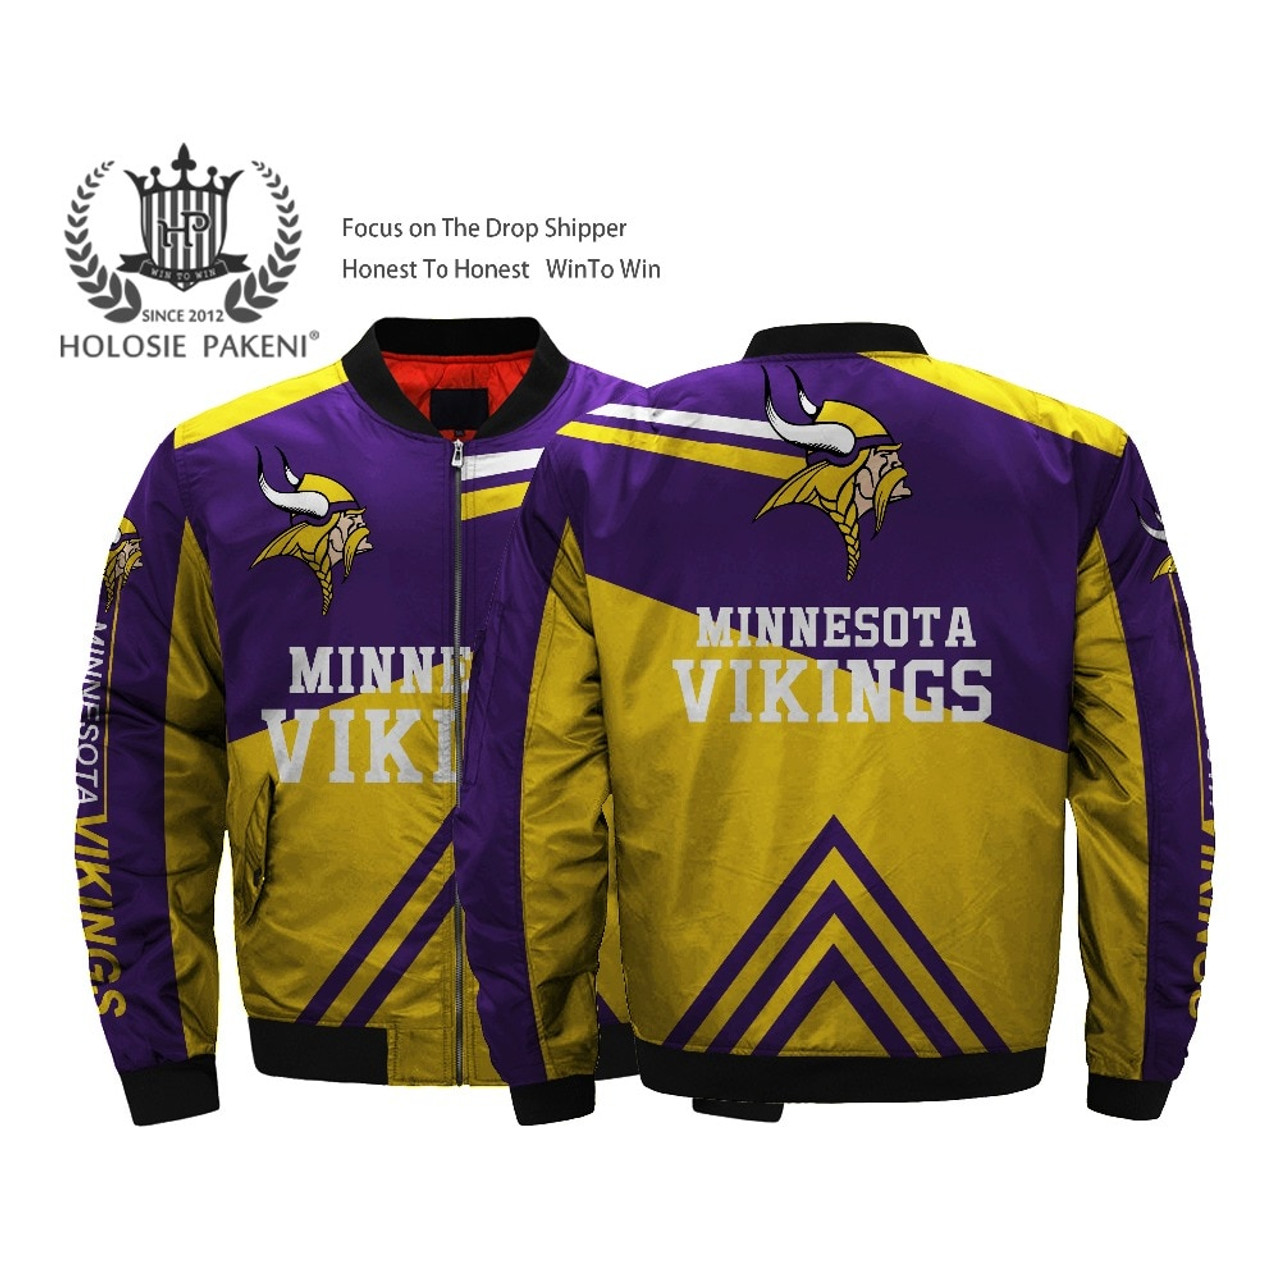 **(OFFICIALLY-LICENSED-N.F.L.MINNESOTA-VIKINGS-JACKETS/CLASSIC-VIKINGS-TEAM-COLORS & OFFICIAL-VIKINGS-LOGOS,BOMBER/MA-1 FLIGHT-JACKET,NICE-CUSTOM-3D-ALL-OVER-GRAPHIC-PRINTED-DOUBLE-SIDED/ZIP-UP-FRONT-WARM-PREMIUM-N.F.L.VIKINGS-FLIGHT-JACKETS)**